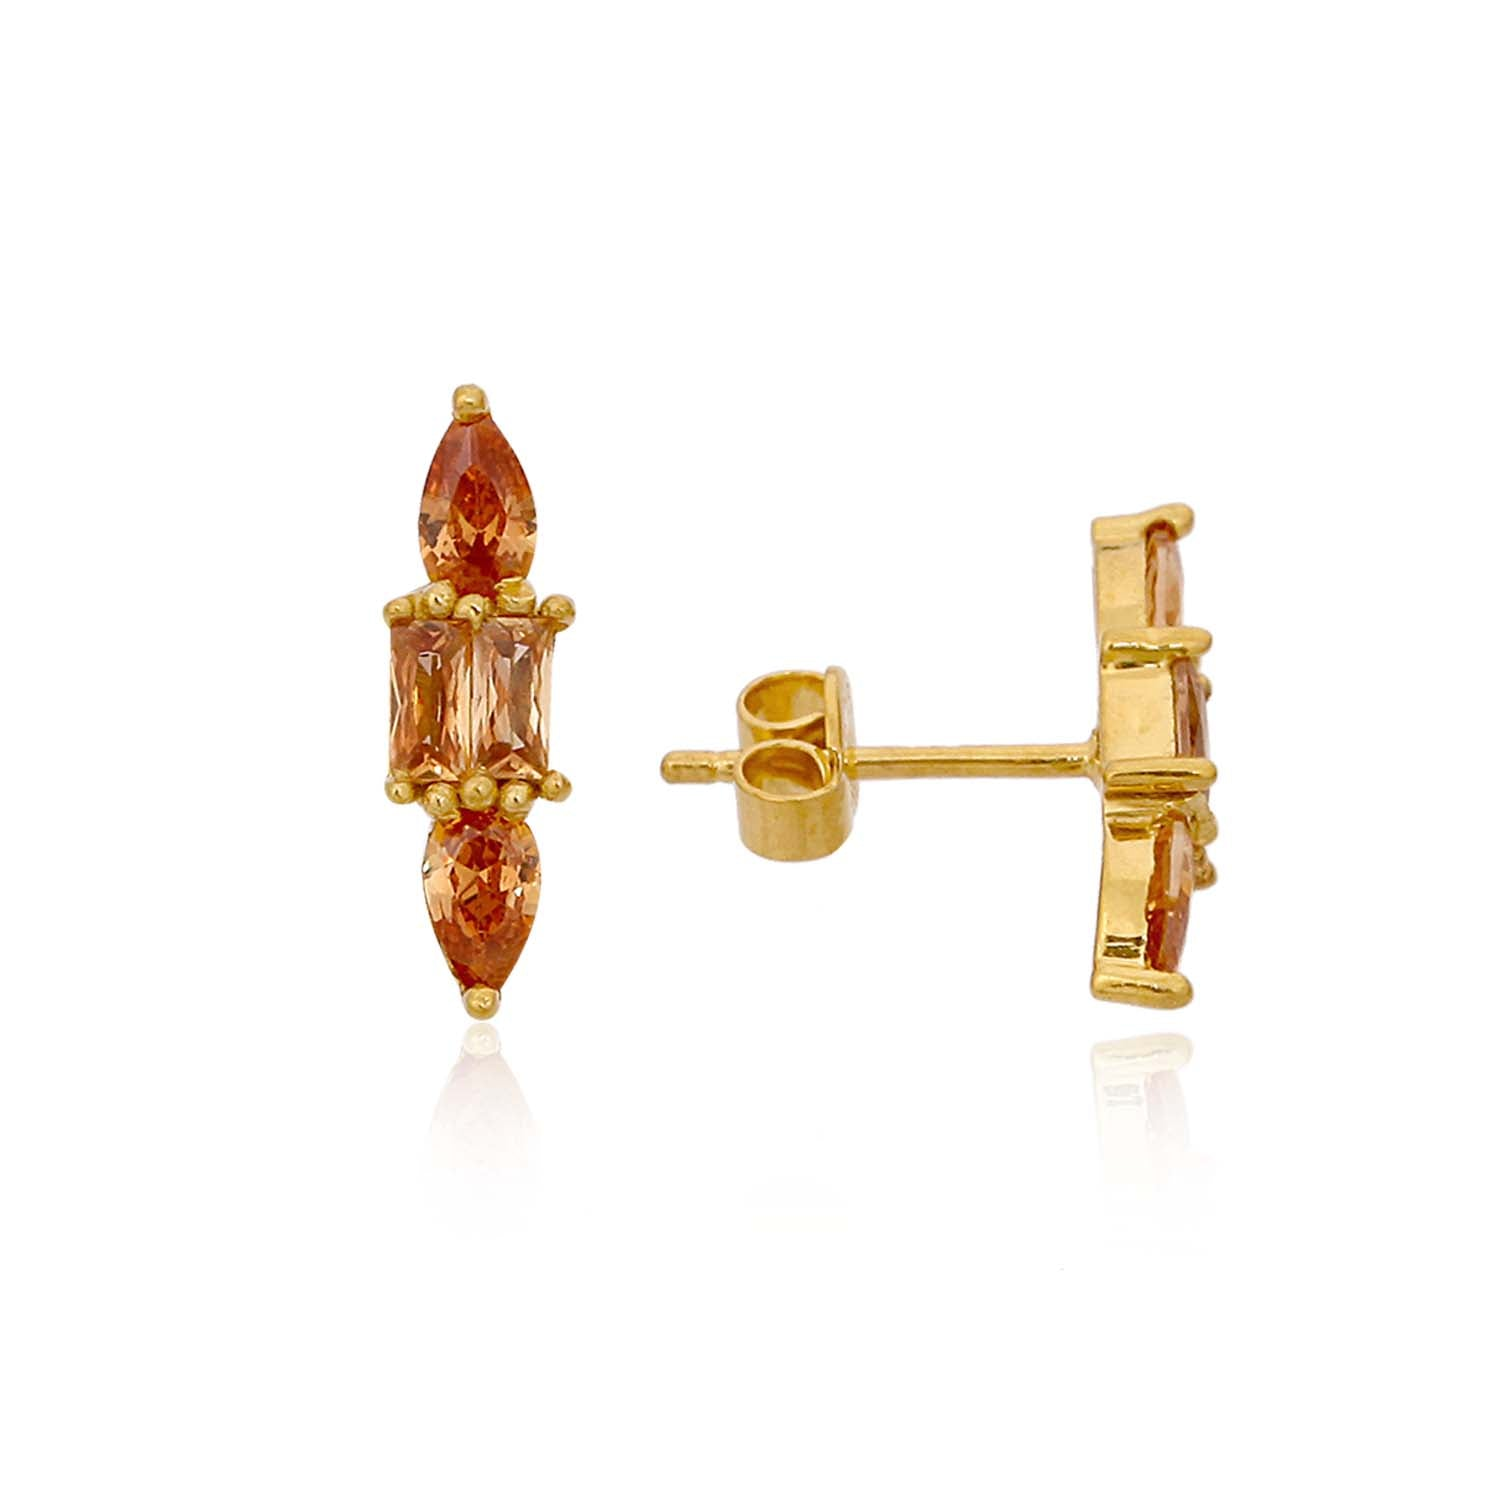 Trito - Gold Plated Earrings Champagne